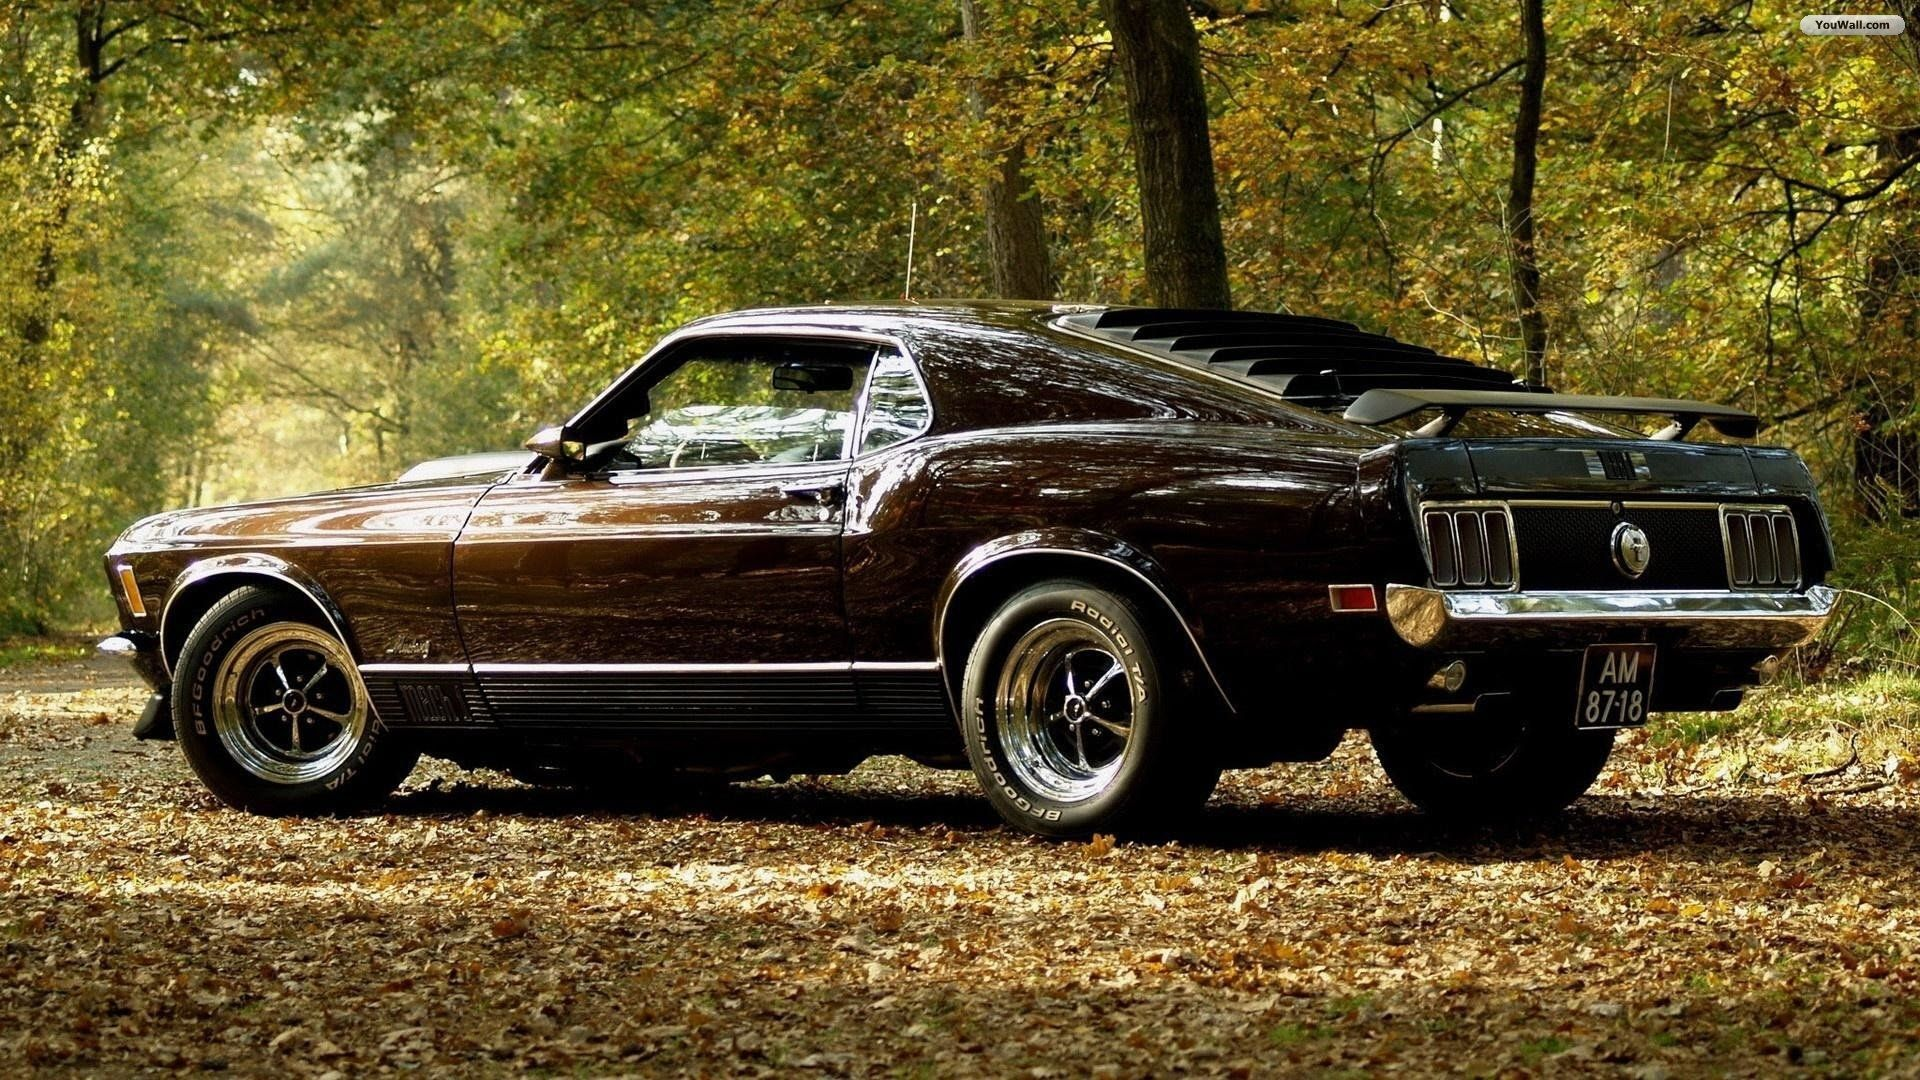 Mustang Wallpapers 1920 X 1080 Mustang Cars Ford Mustang Dream Cars